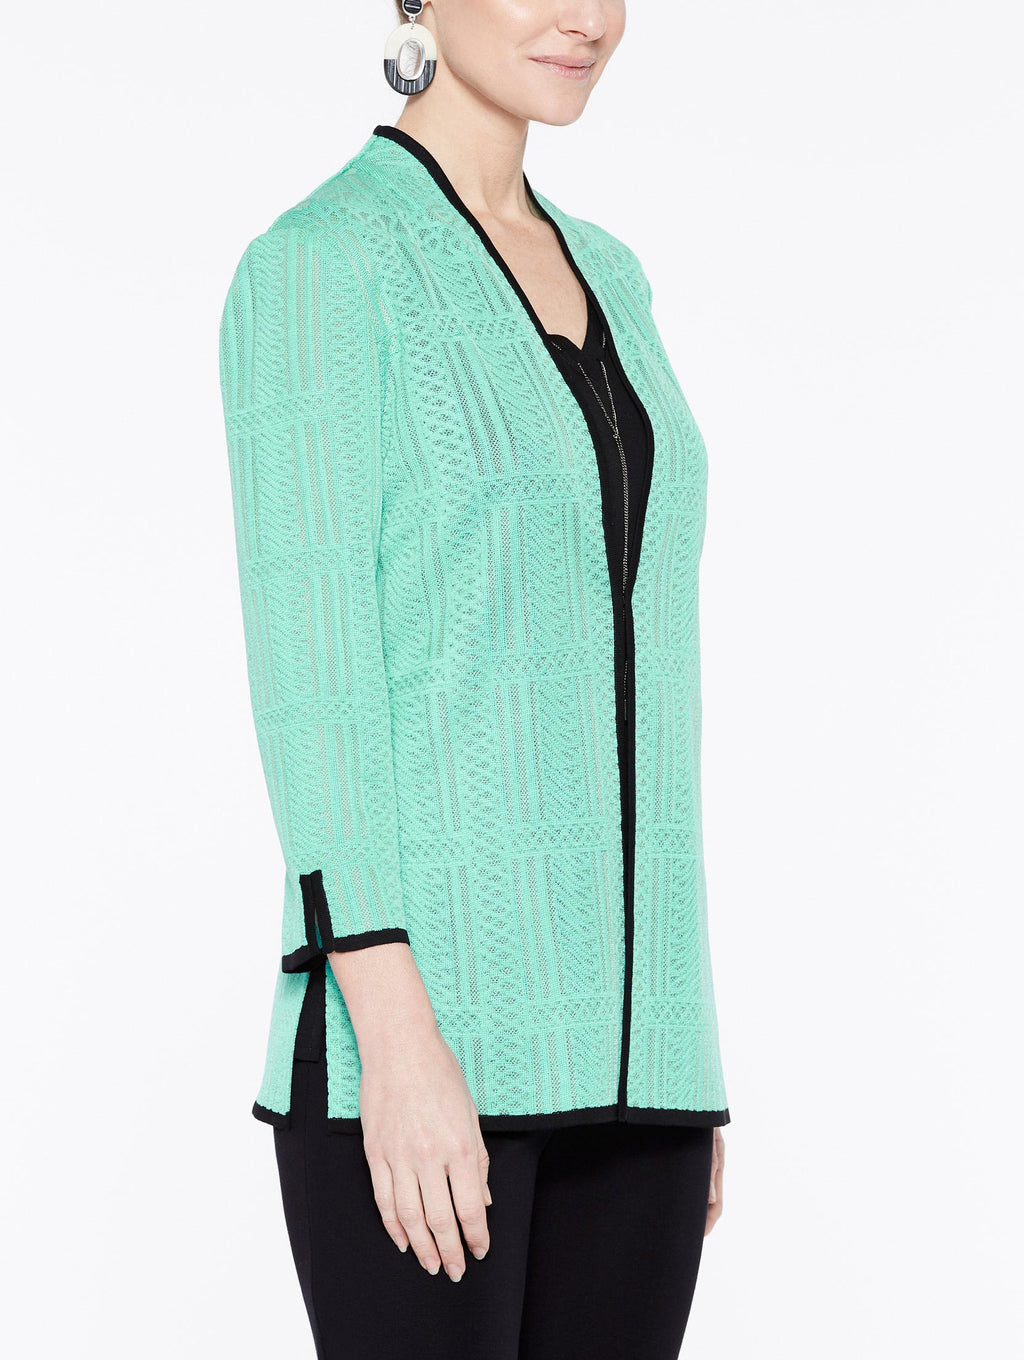 Soundwave Textured Jacket